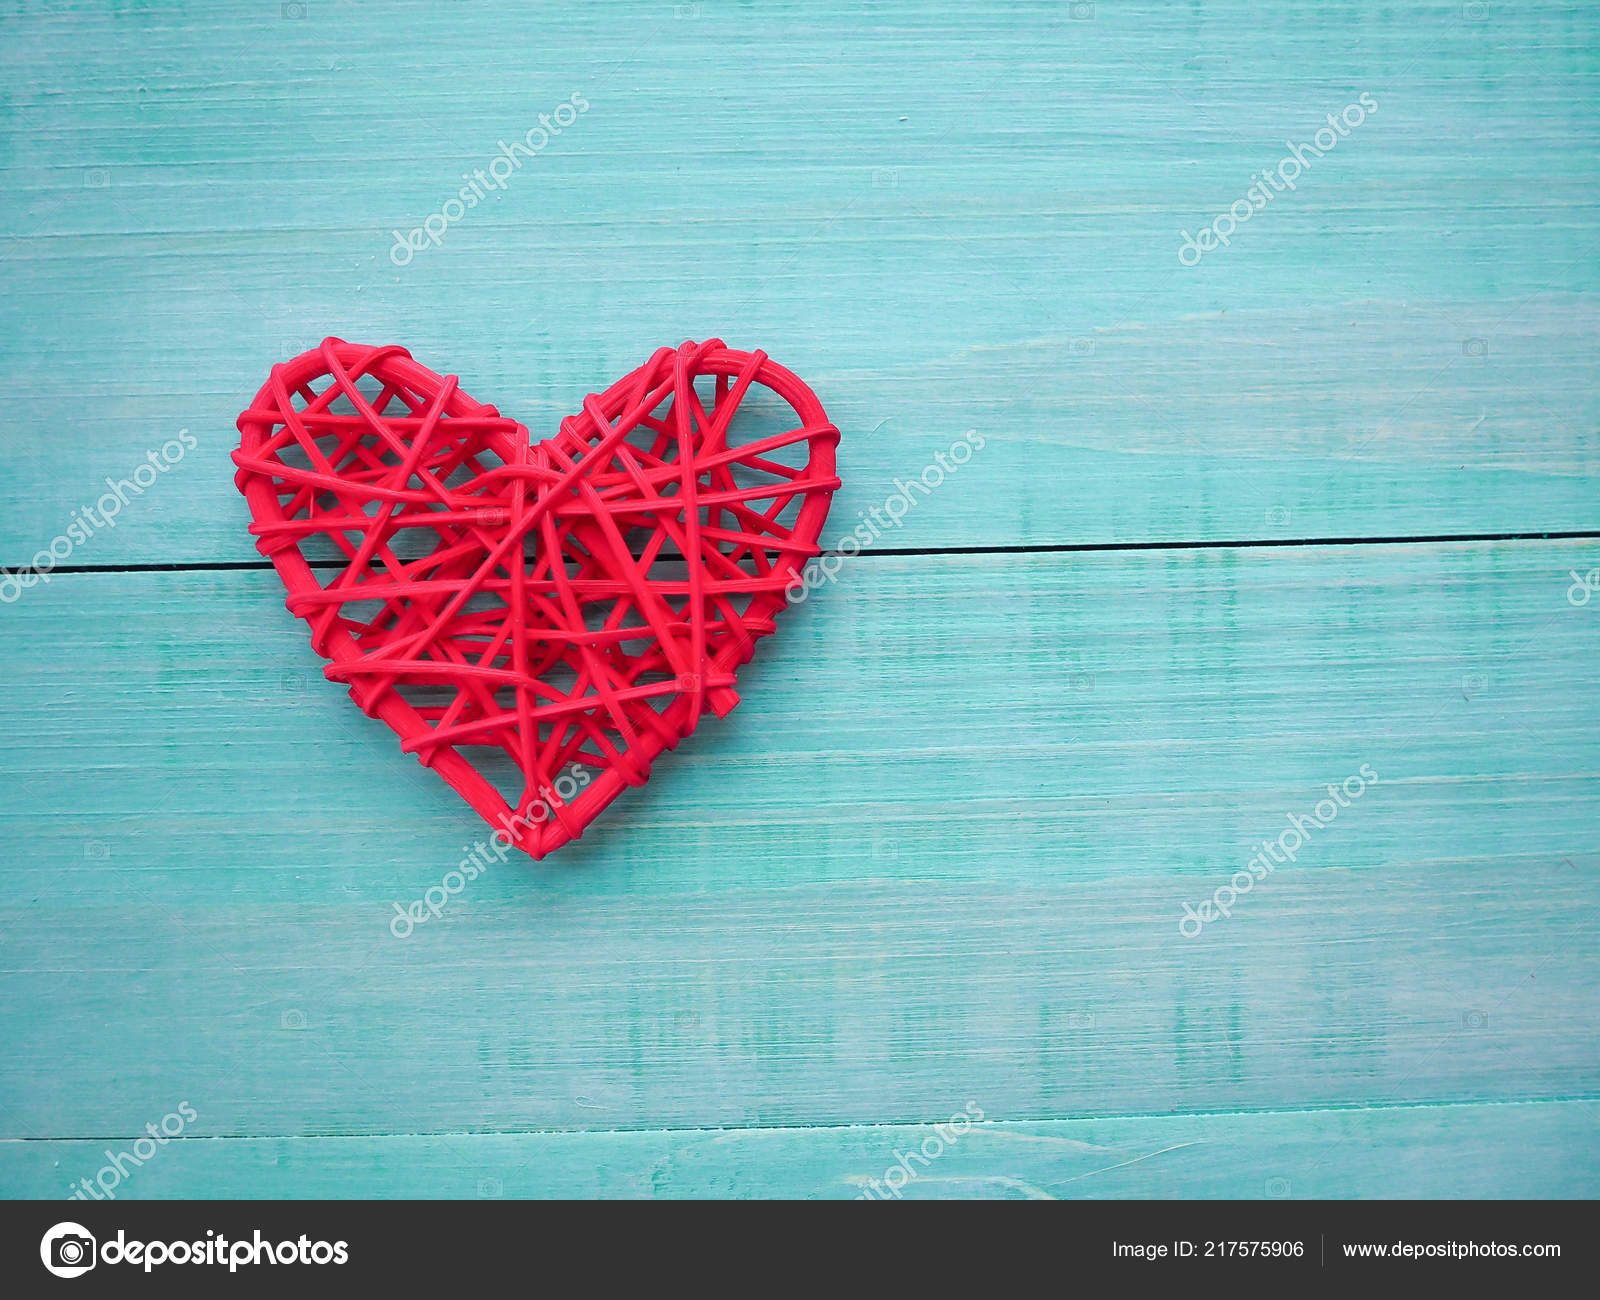 Lots Little Flowers Red Heart Beautiful Blue Turquoise Background